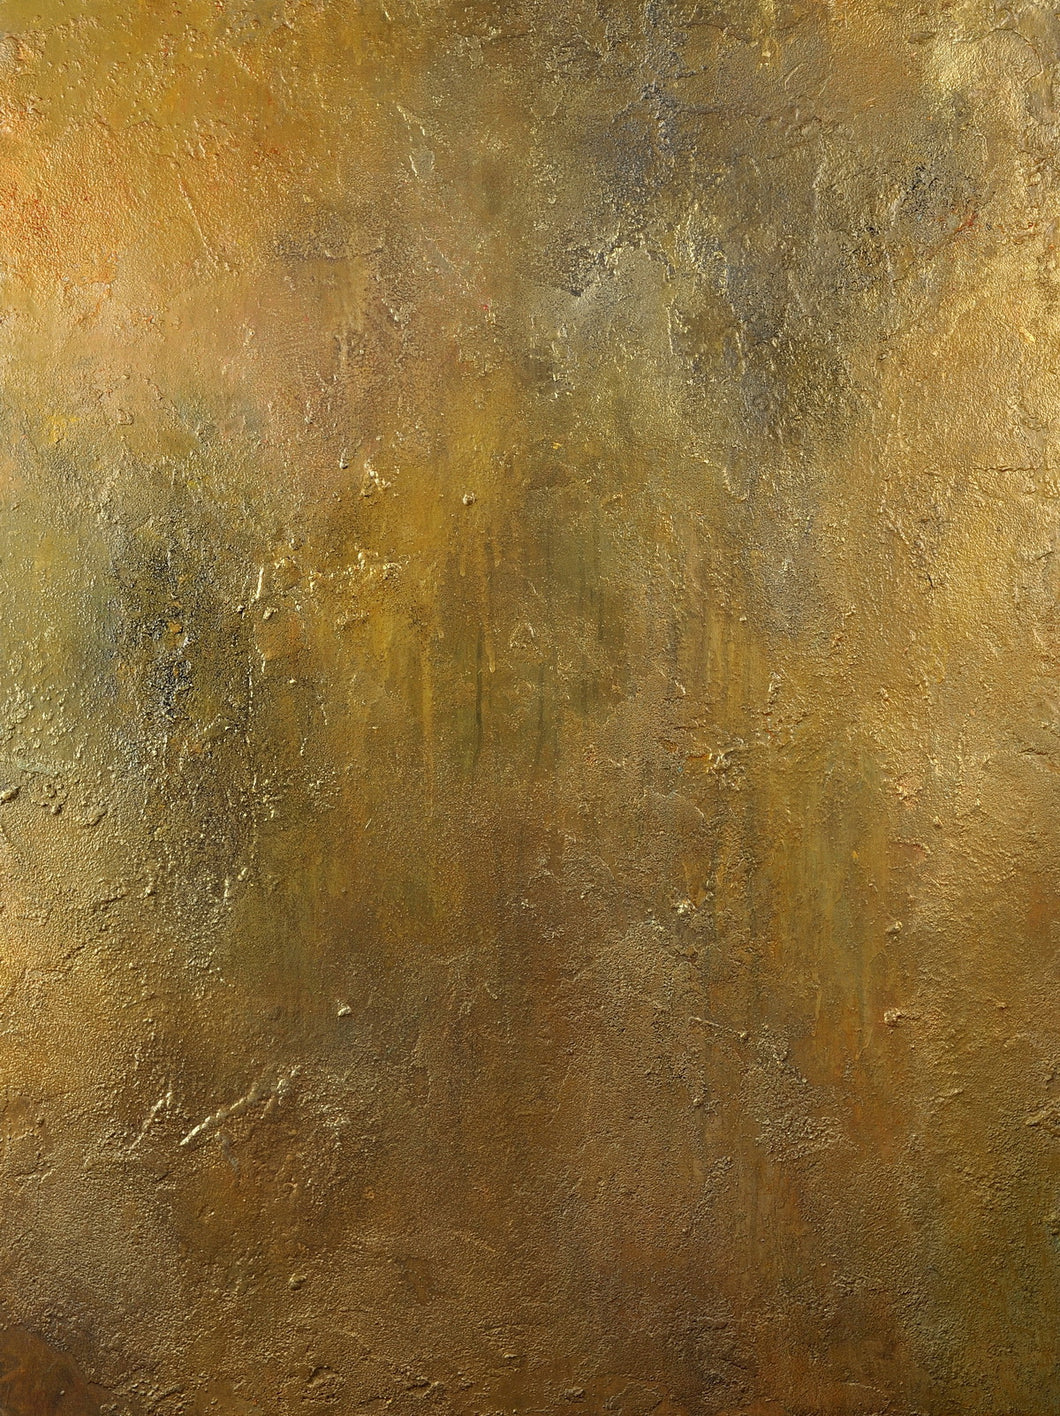 Comprehending The Vast, 40 x 30 inches